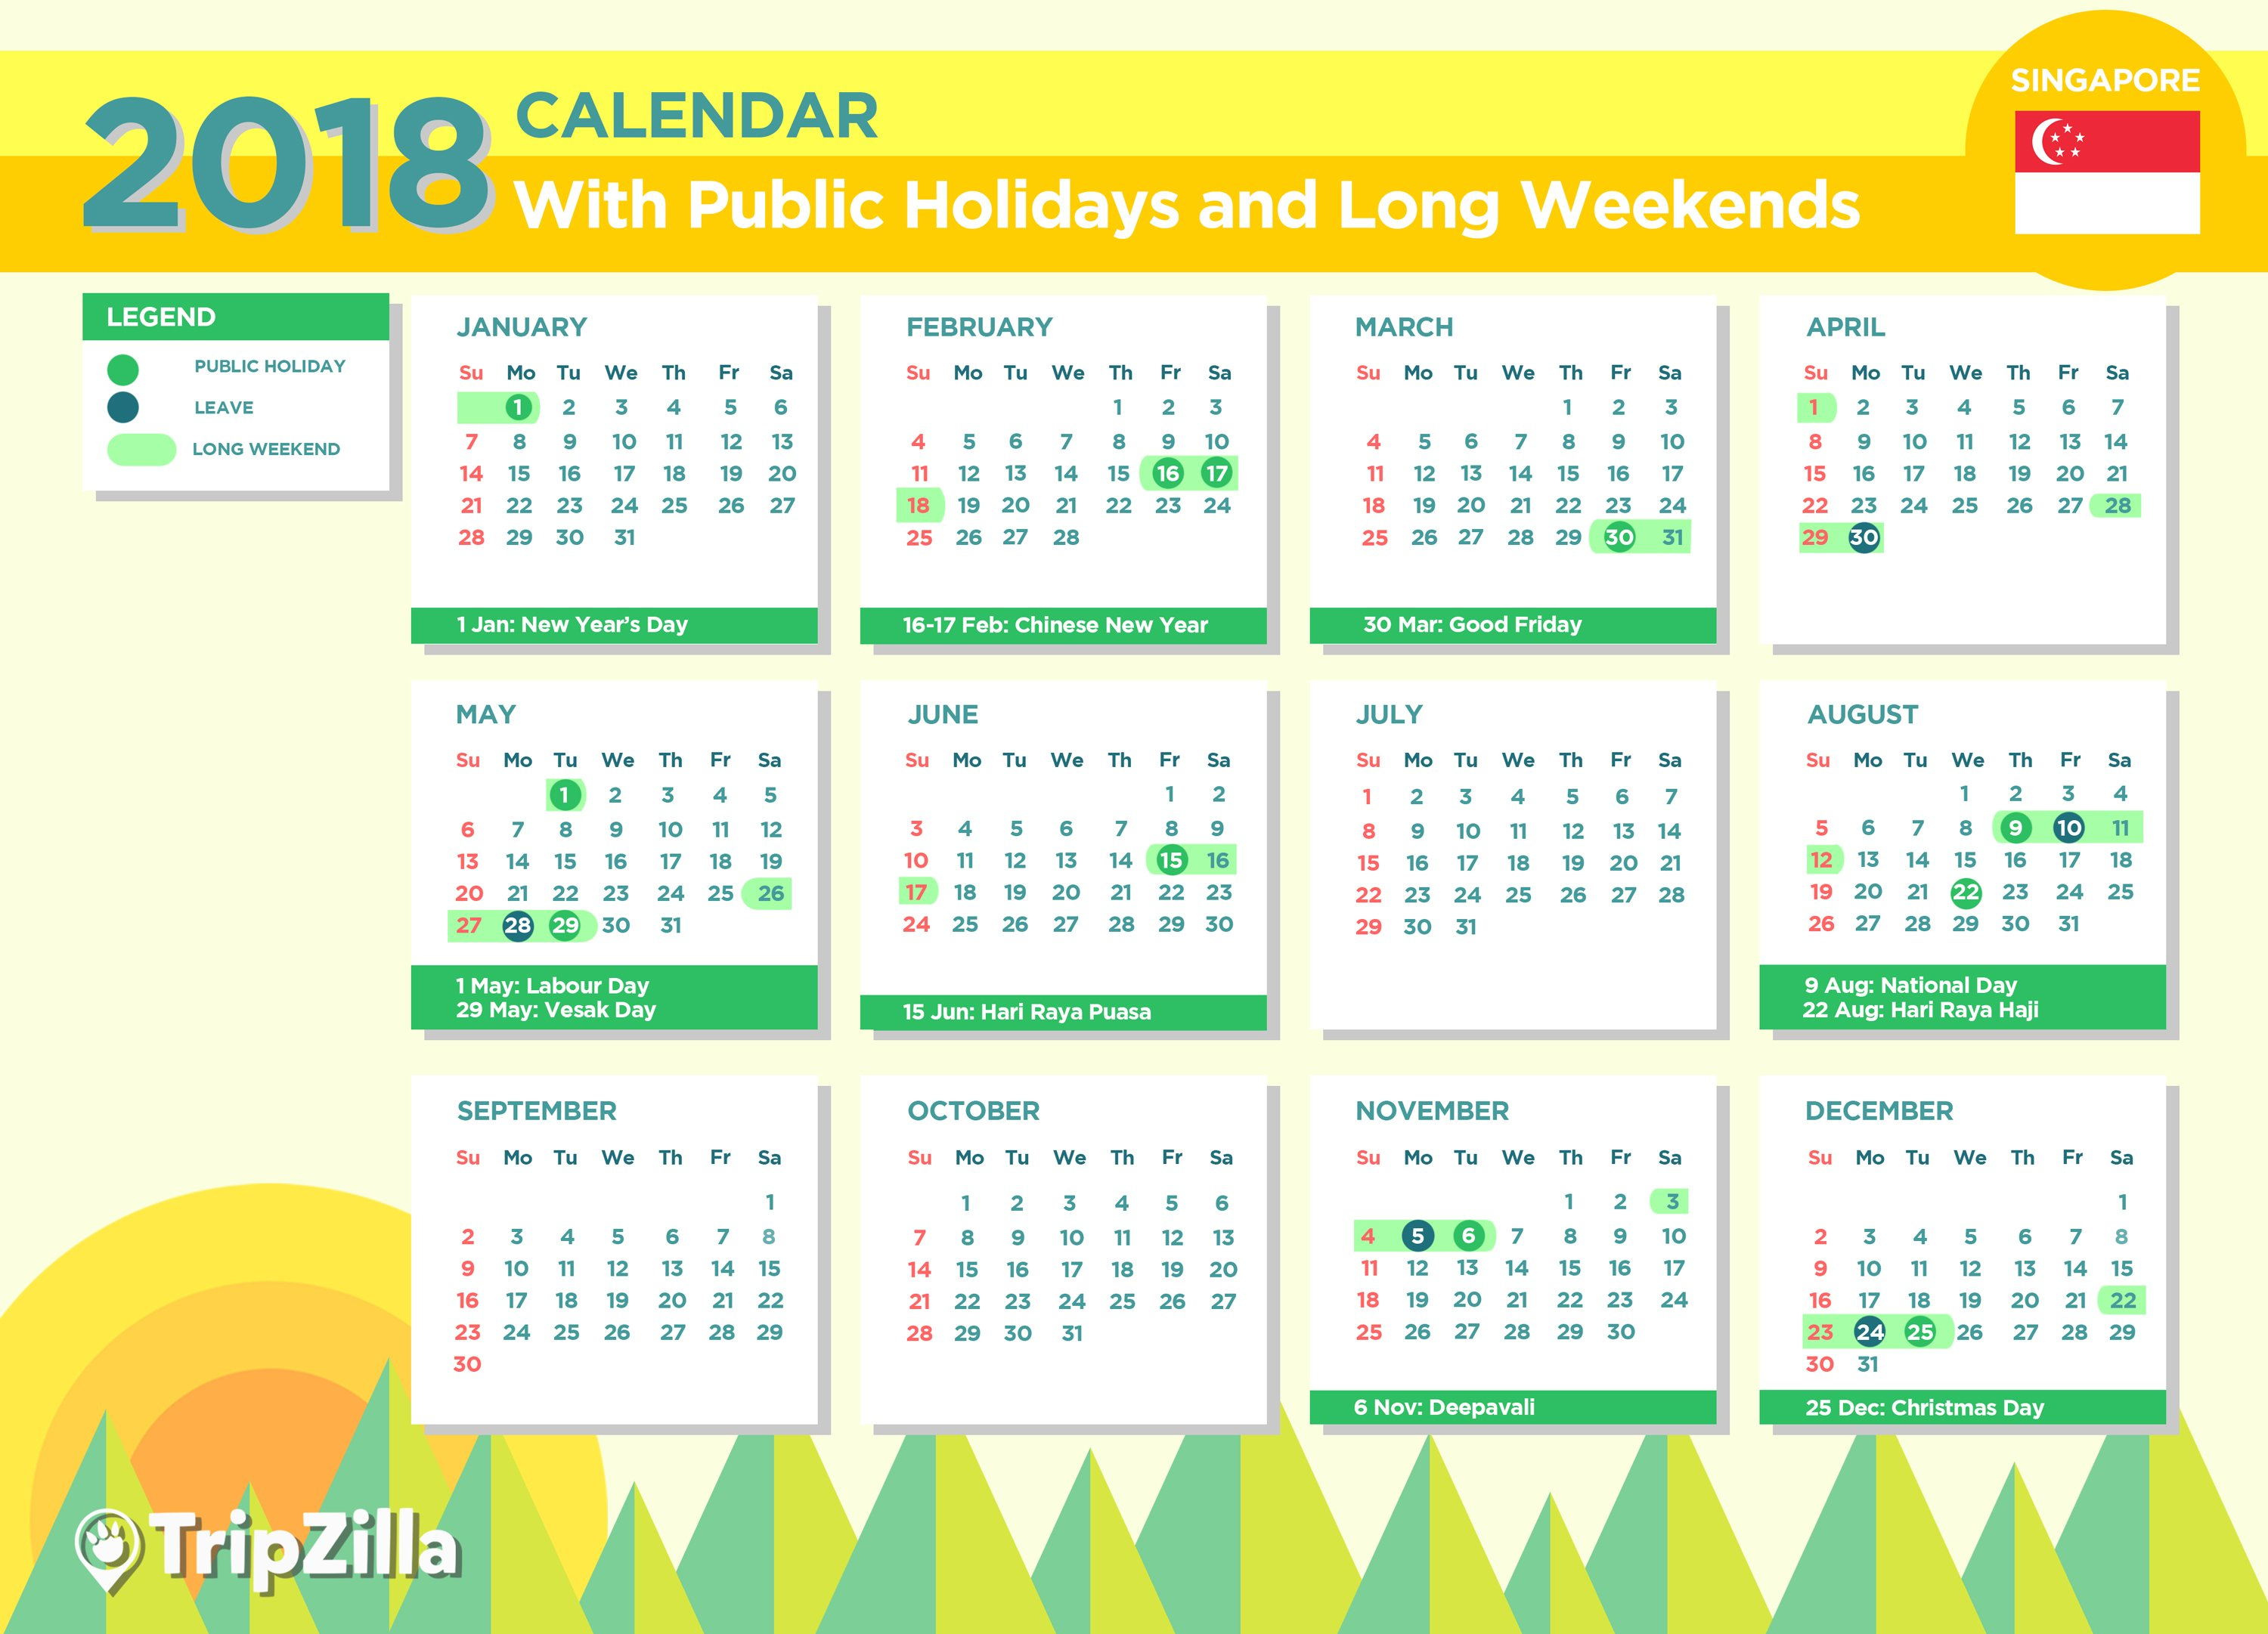 9 Long Weekends in Singapore in 2018 (Bonus Calendar & Cheatsheet)